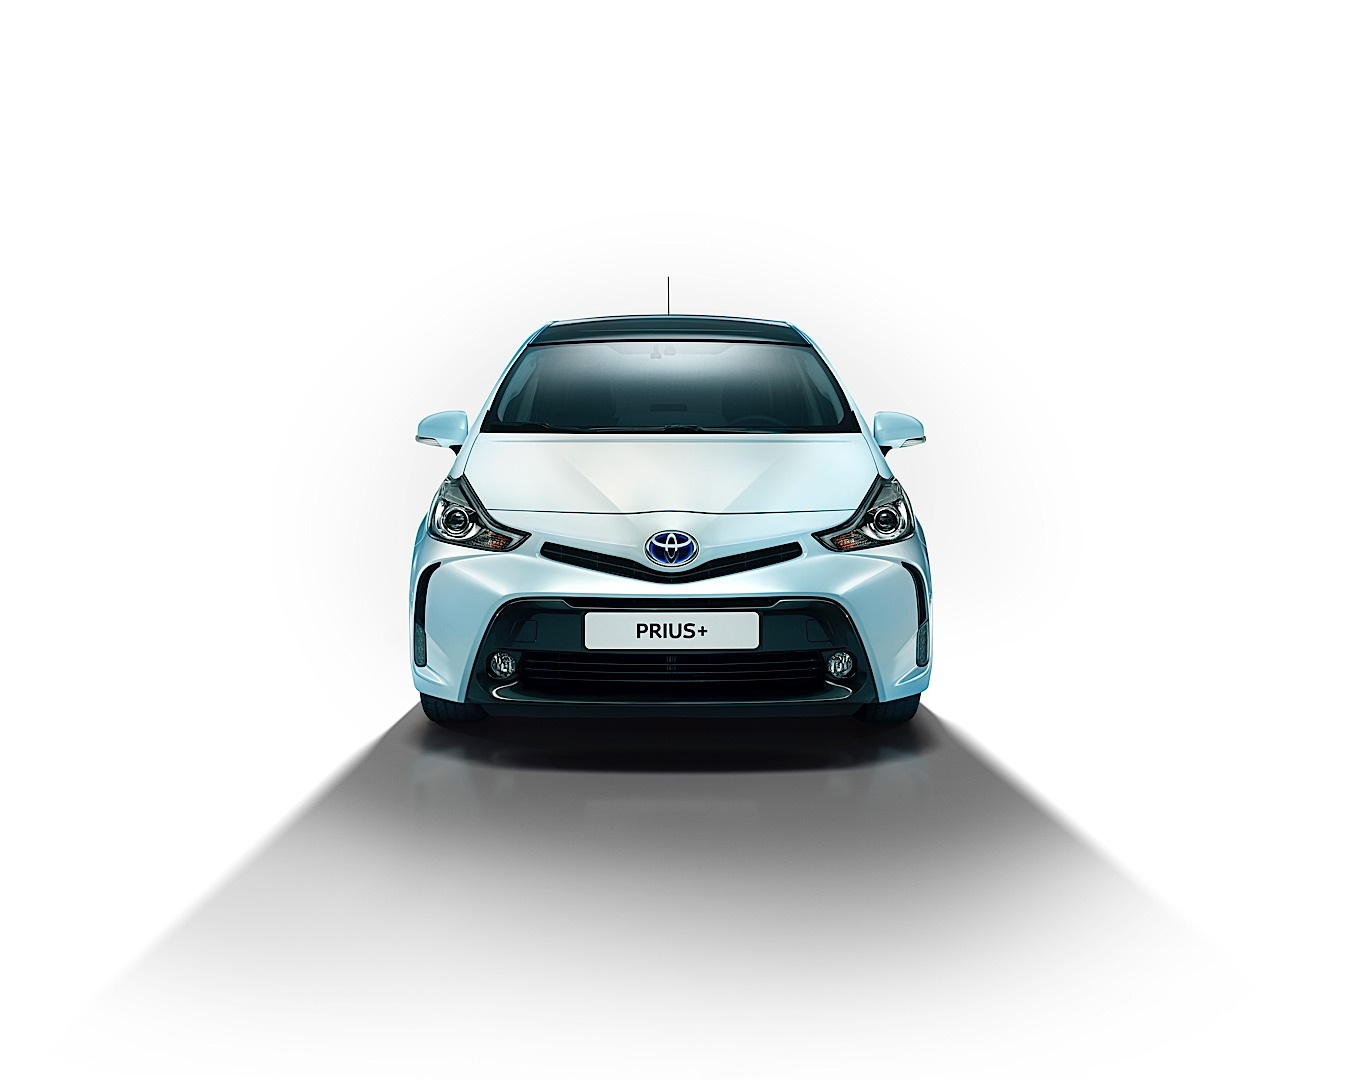 Toyota prius v gets an angry face for 2015 autoevolution 2015 toyota prius v sciox Image collections